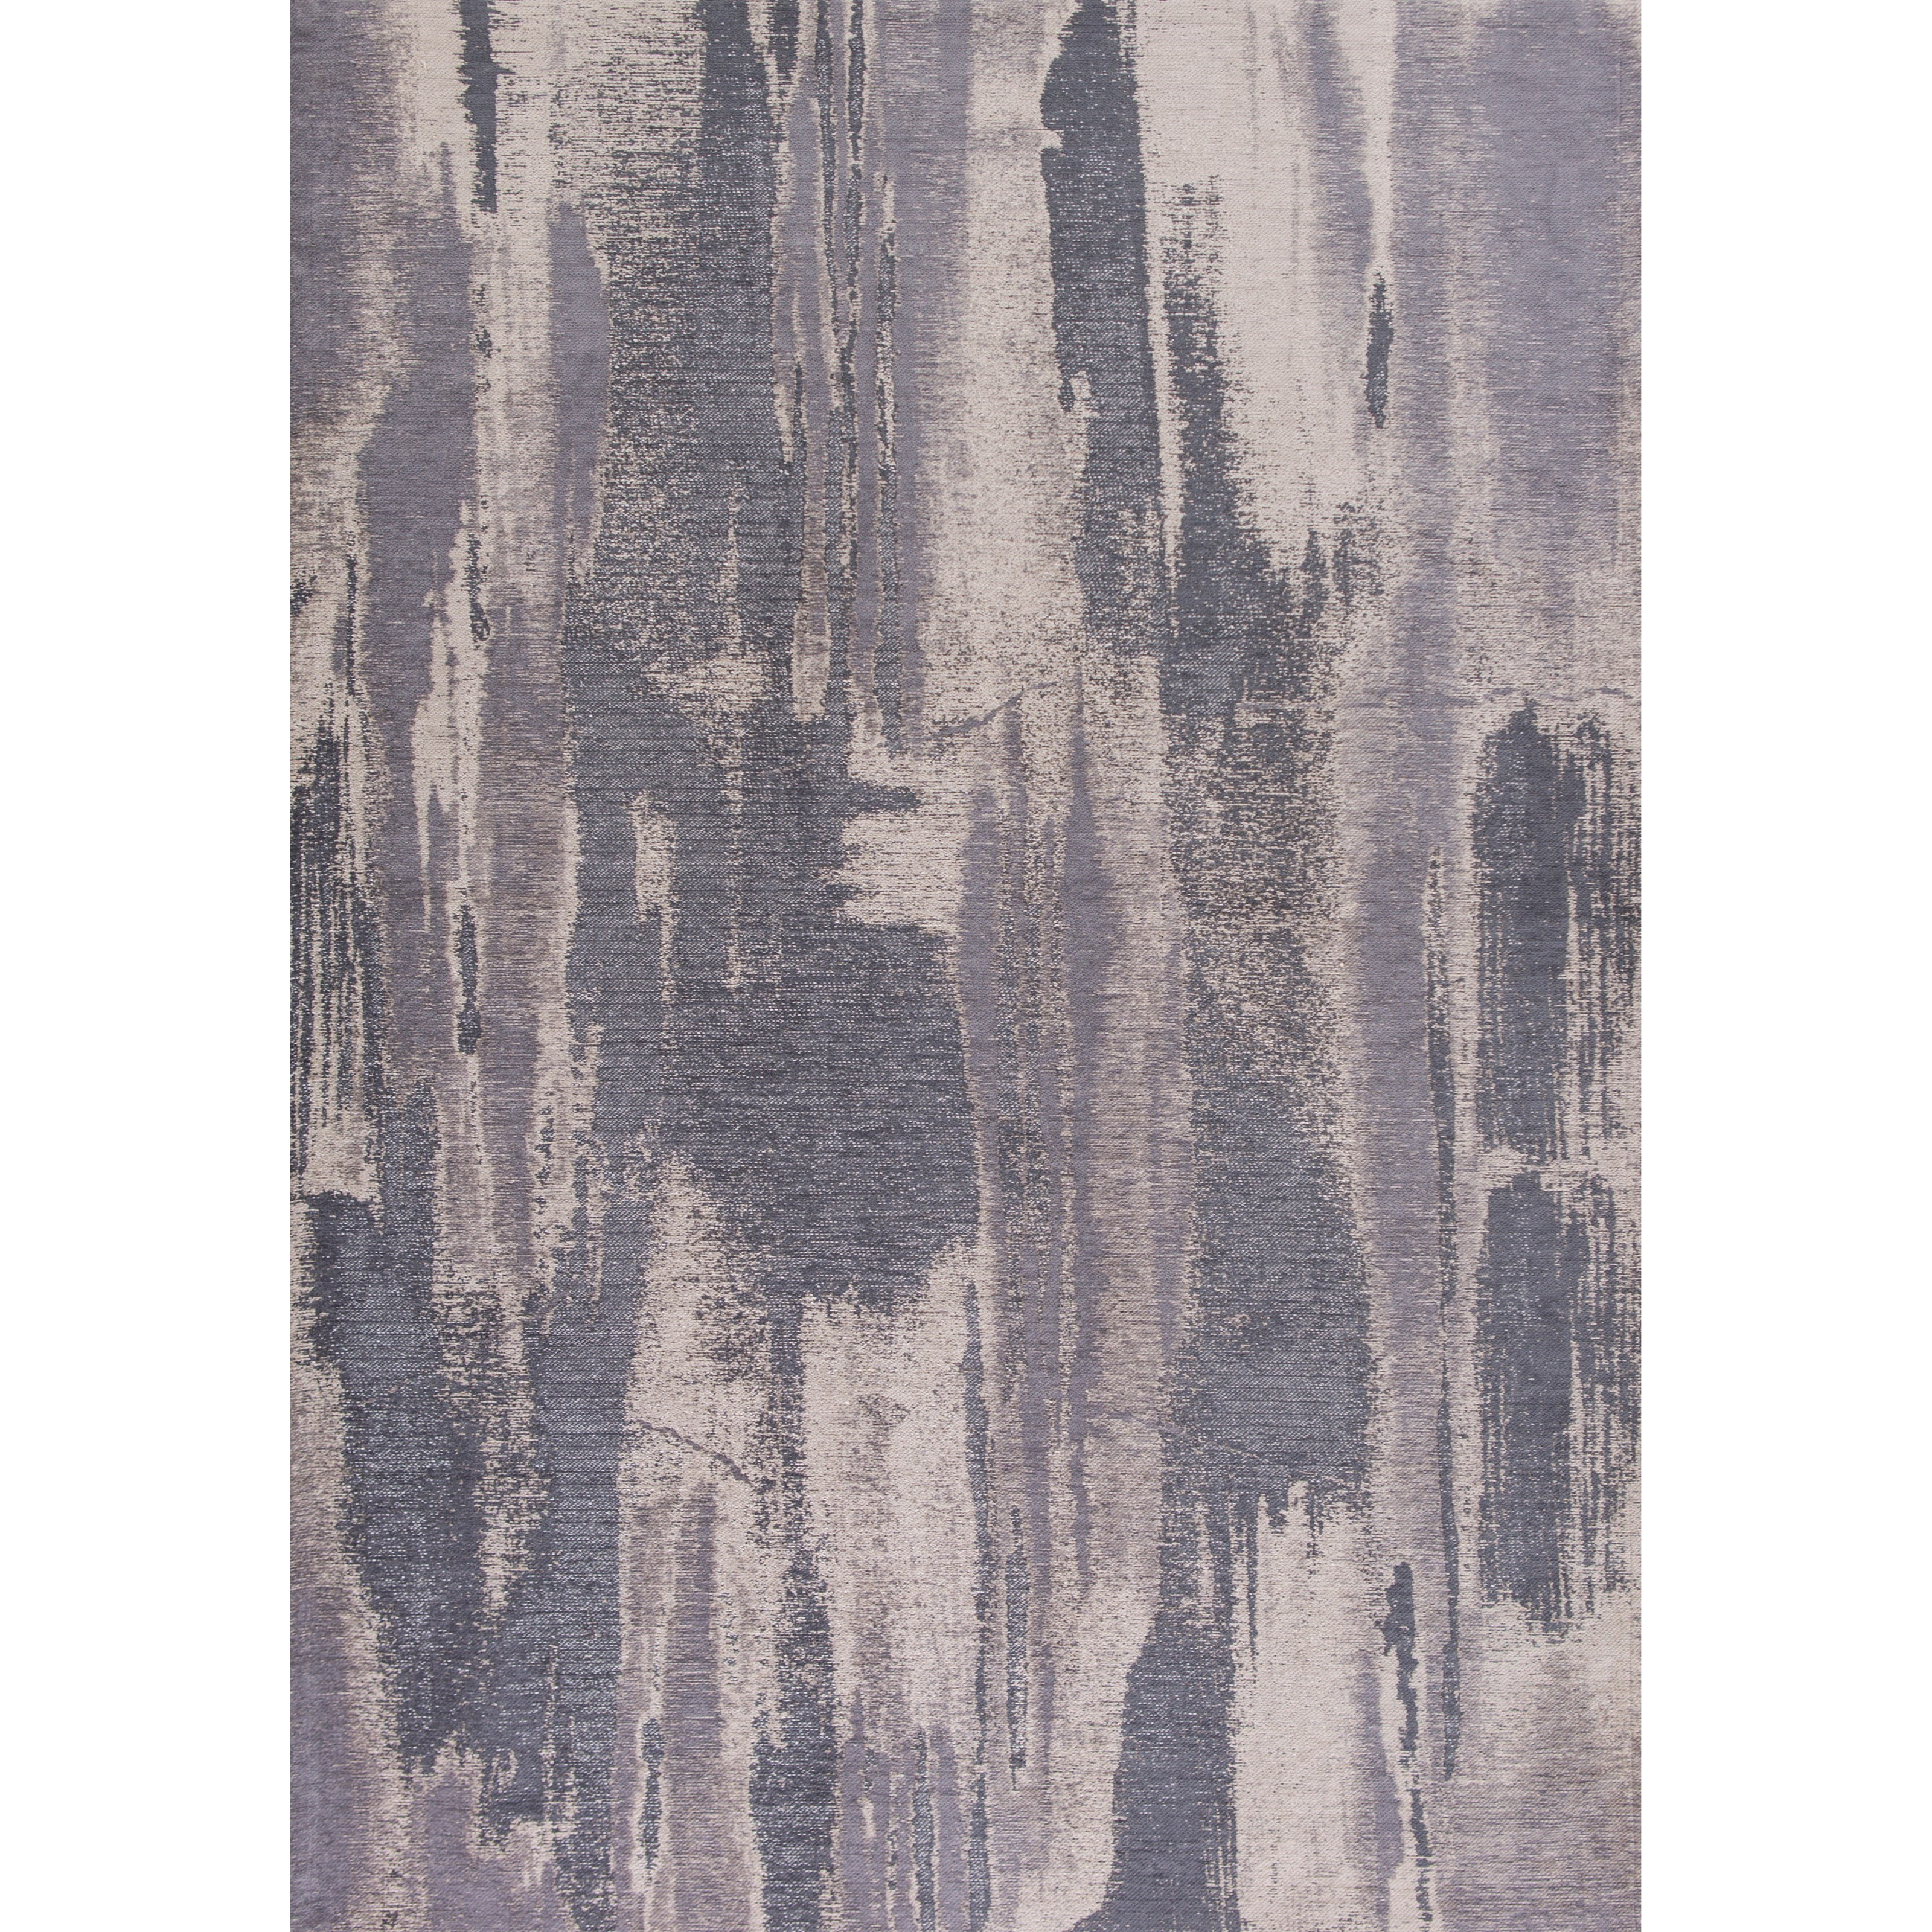 Retreat 5' X 7' Nature's Elements Area Rug by Kas at Zak's Home